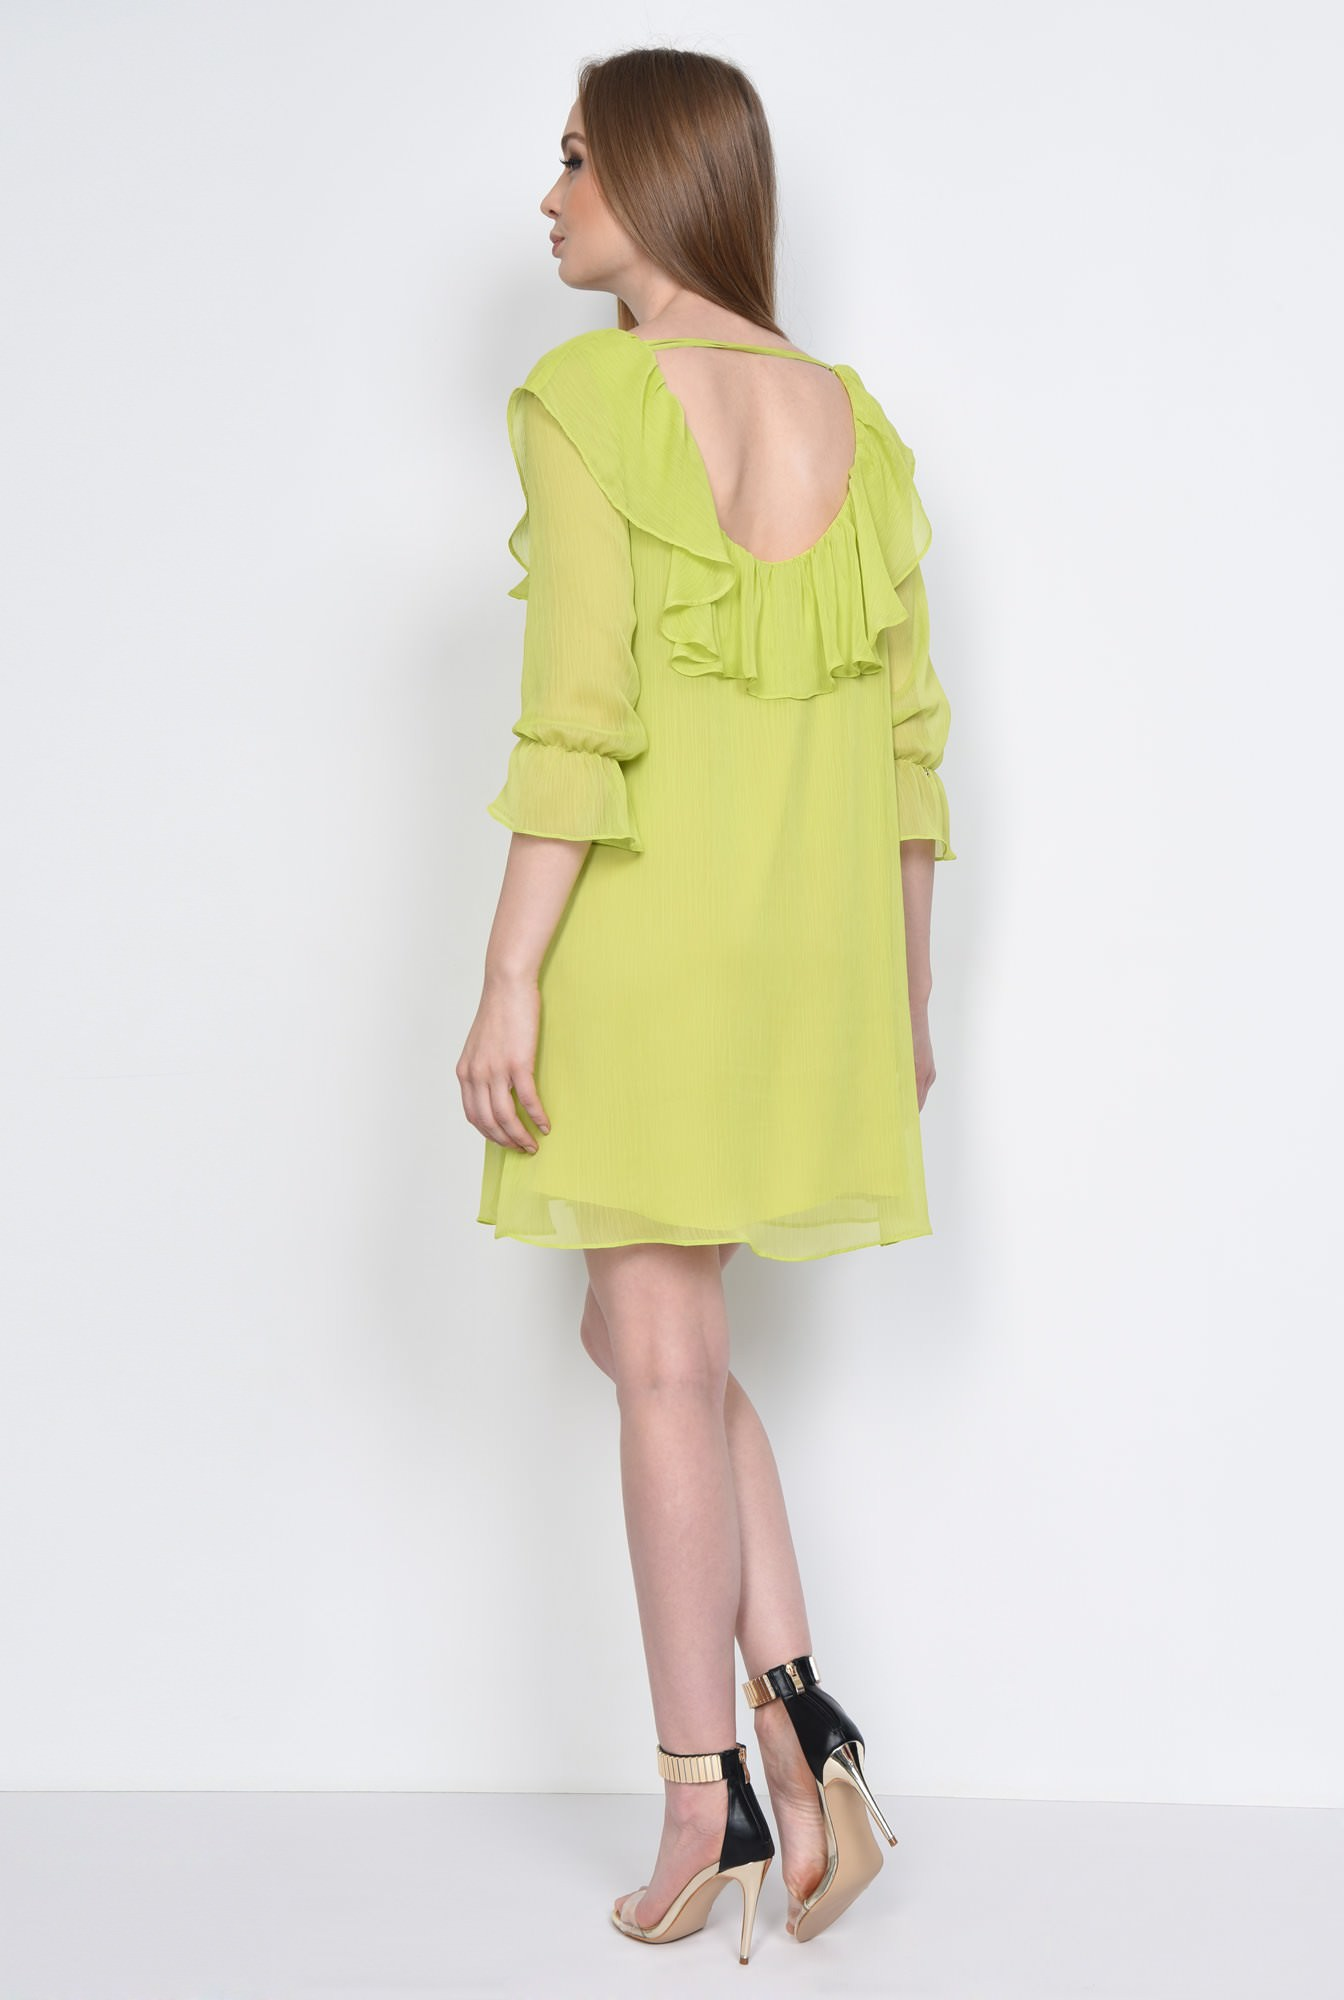 1 - ROCHIE CASUAL LEJERA R 322-LIME